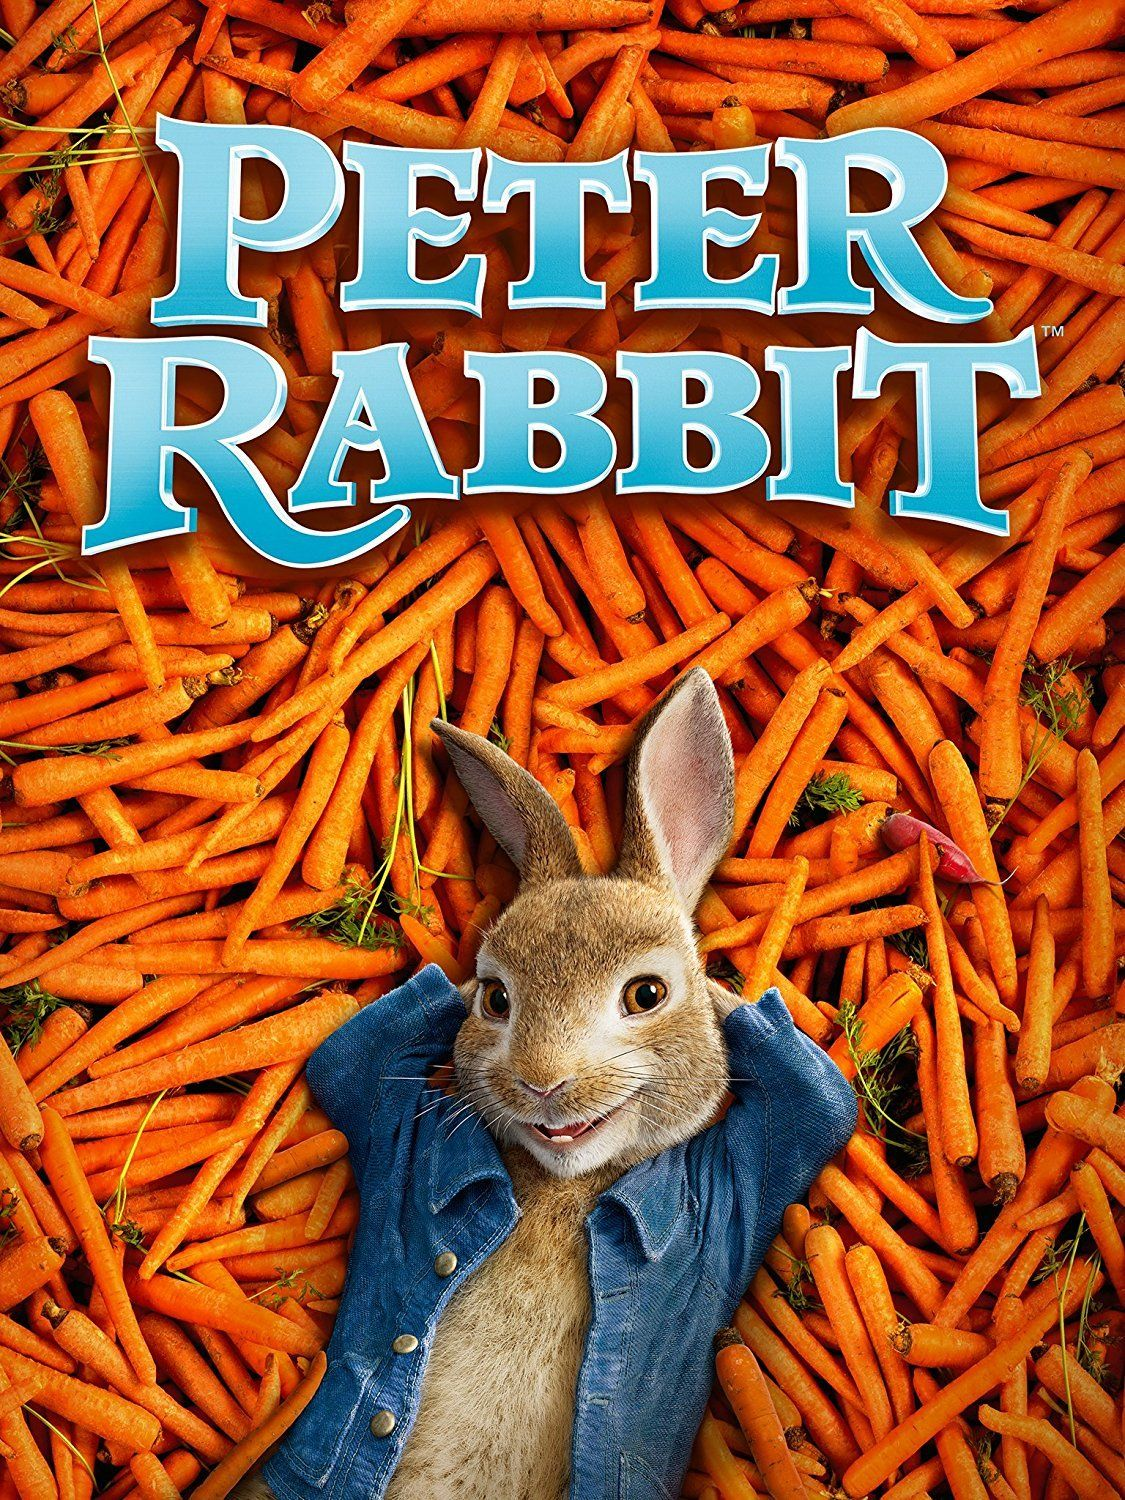 Peter Rabbit 4K (2018) Ultra HD Bluray in 2020 Peter